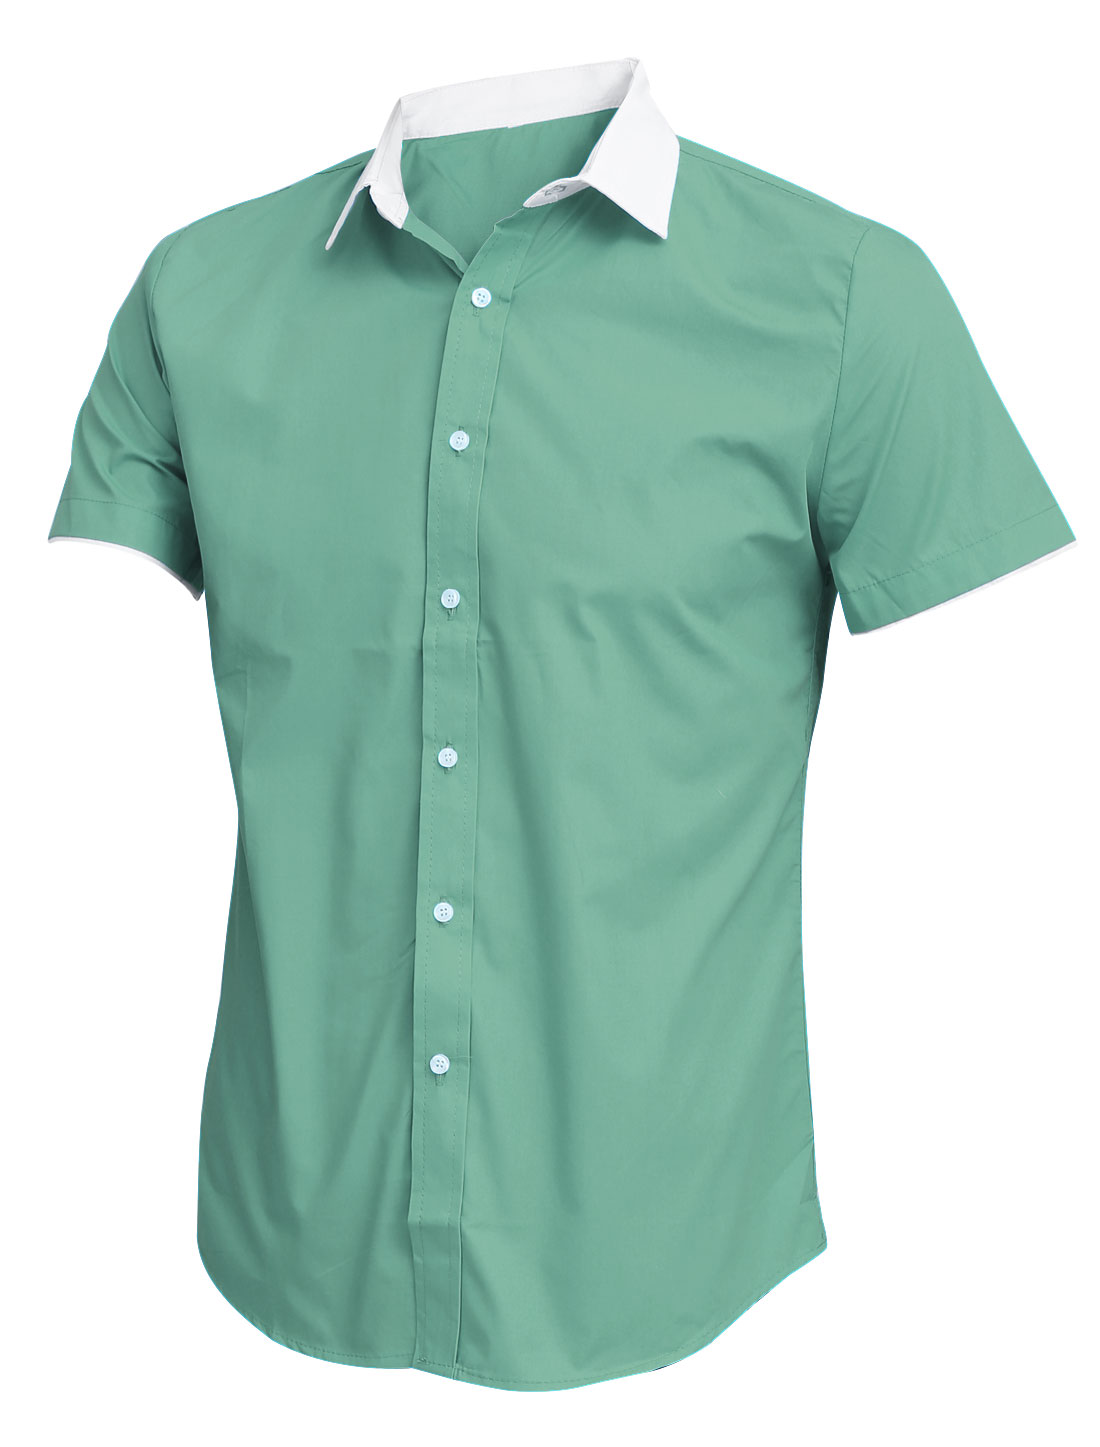 Men Single Breasted Front Short Sleeves Casual Light Green Shirt M